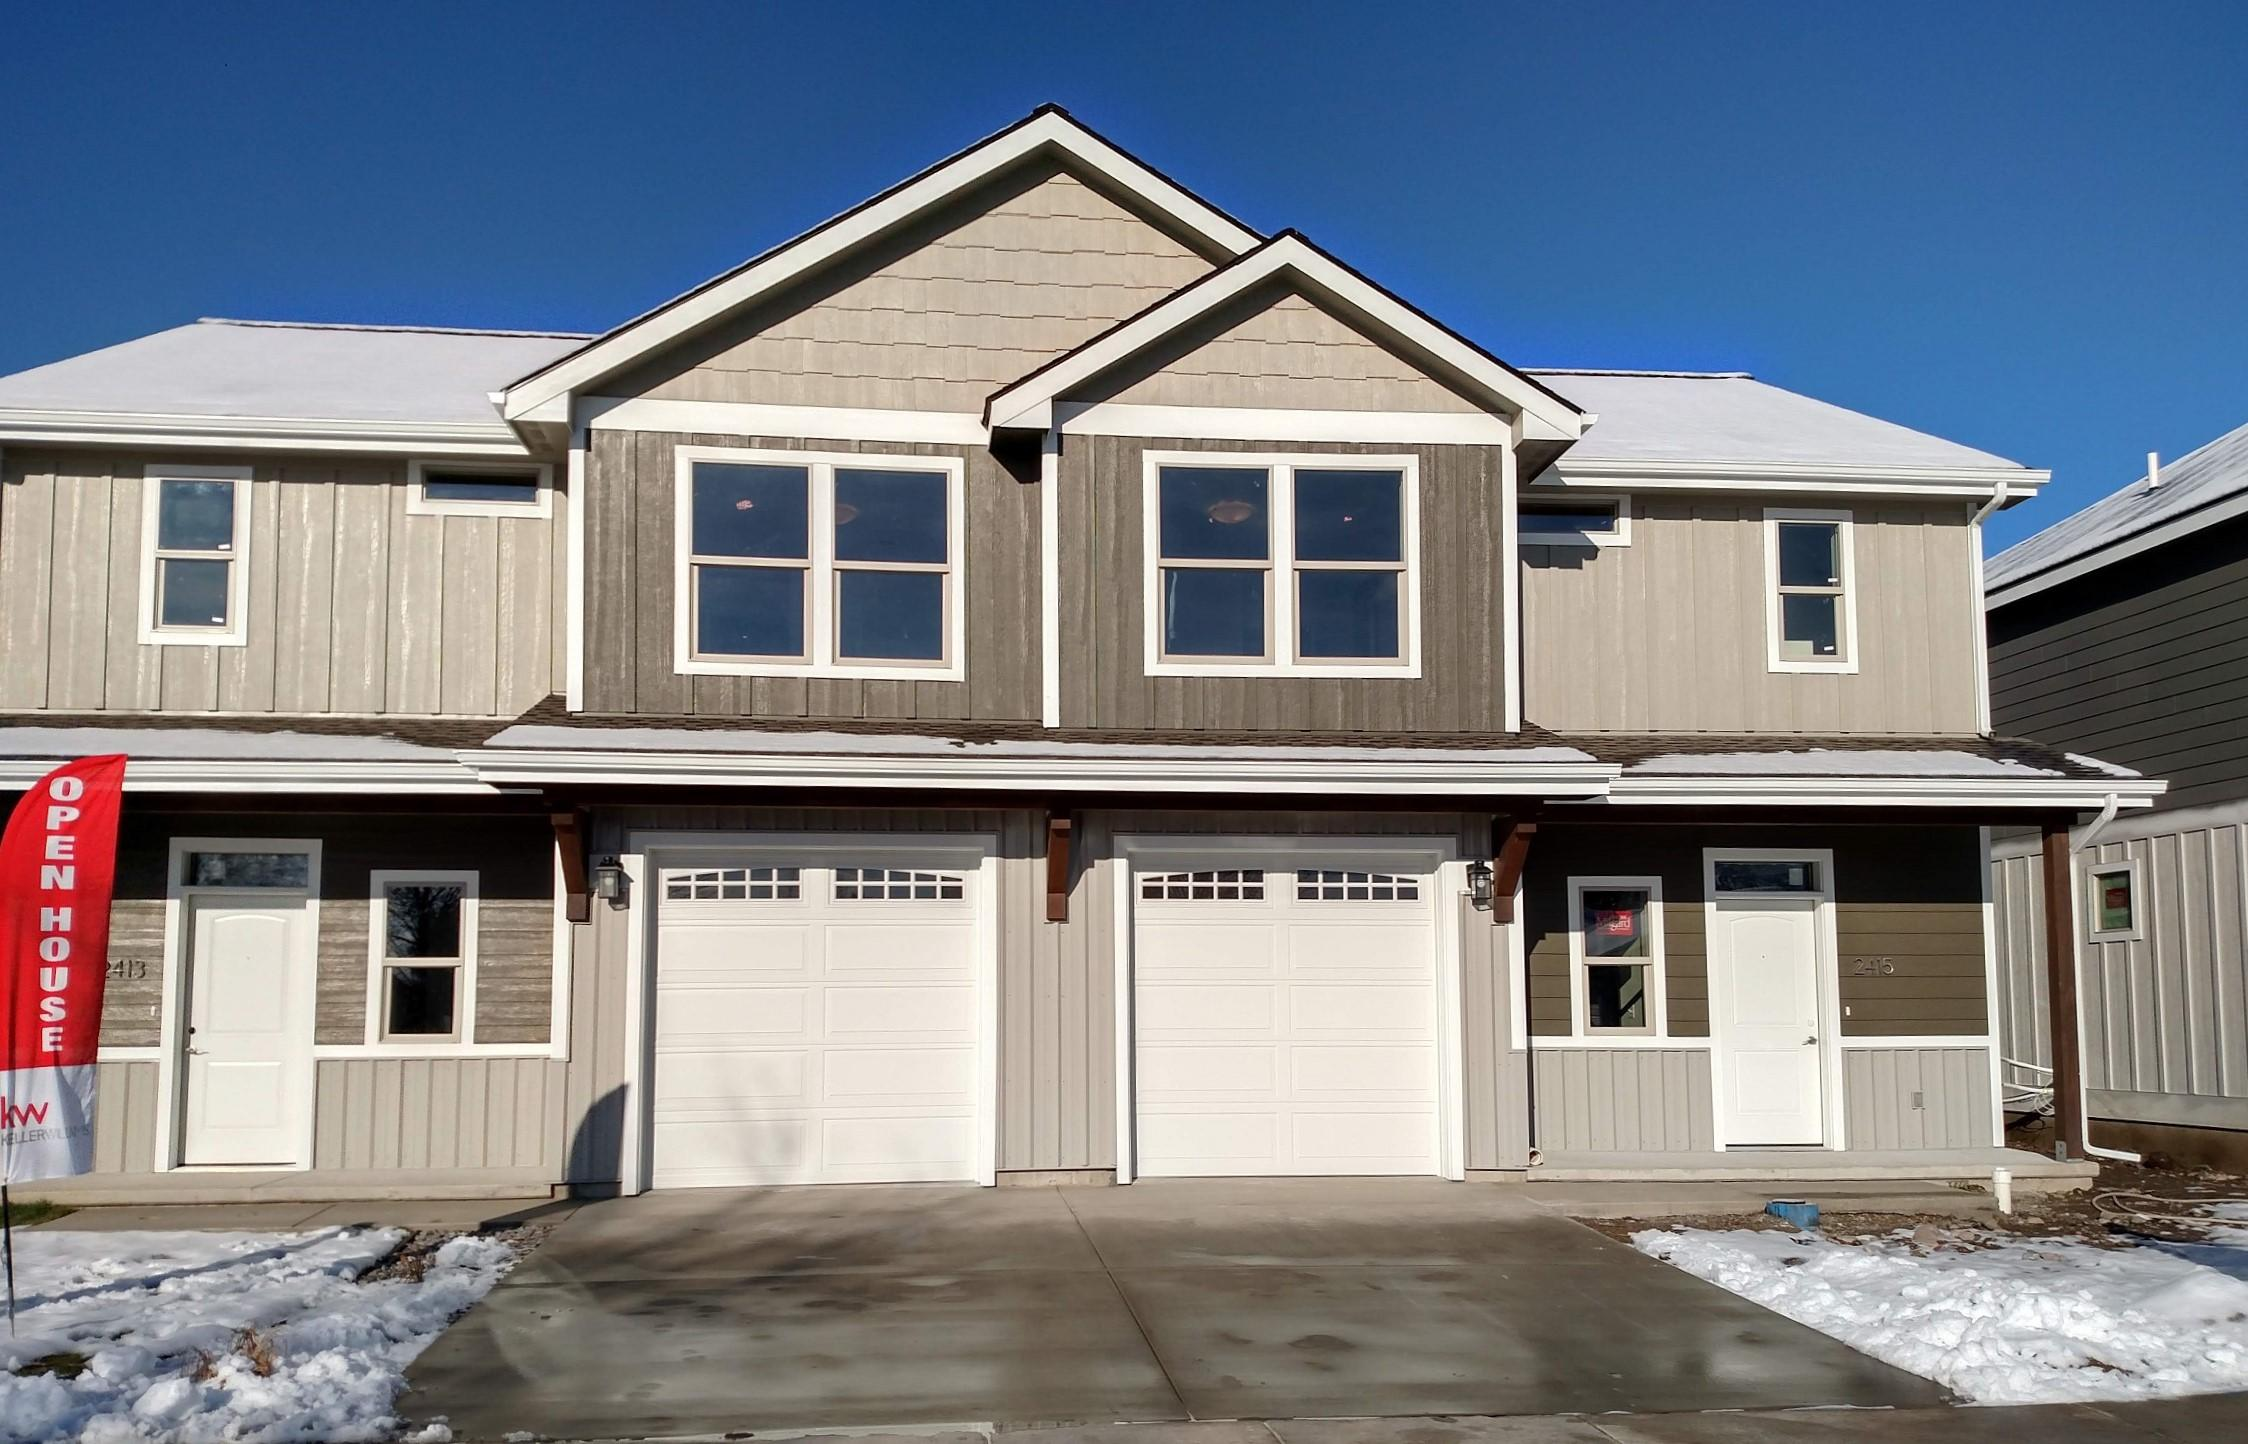 2413 Aspen Grove Loop, Missoula, MT 59801